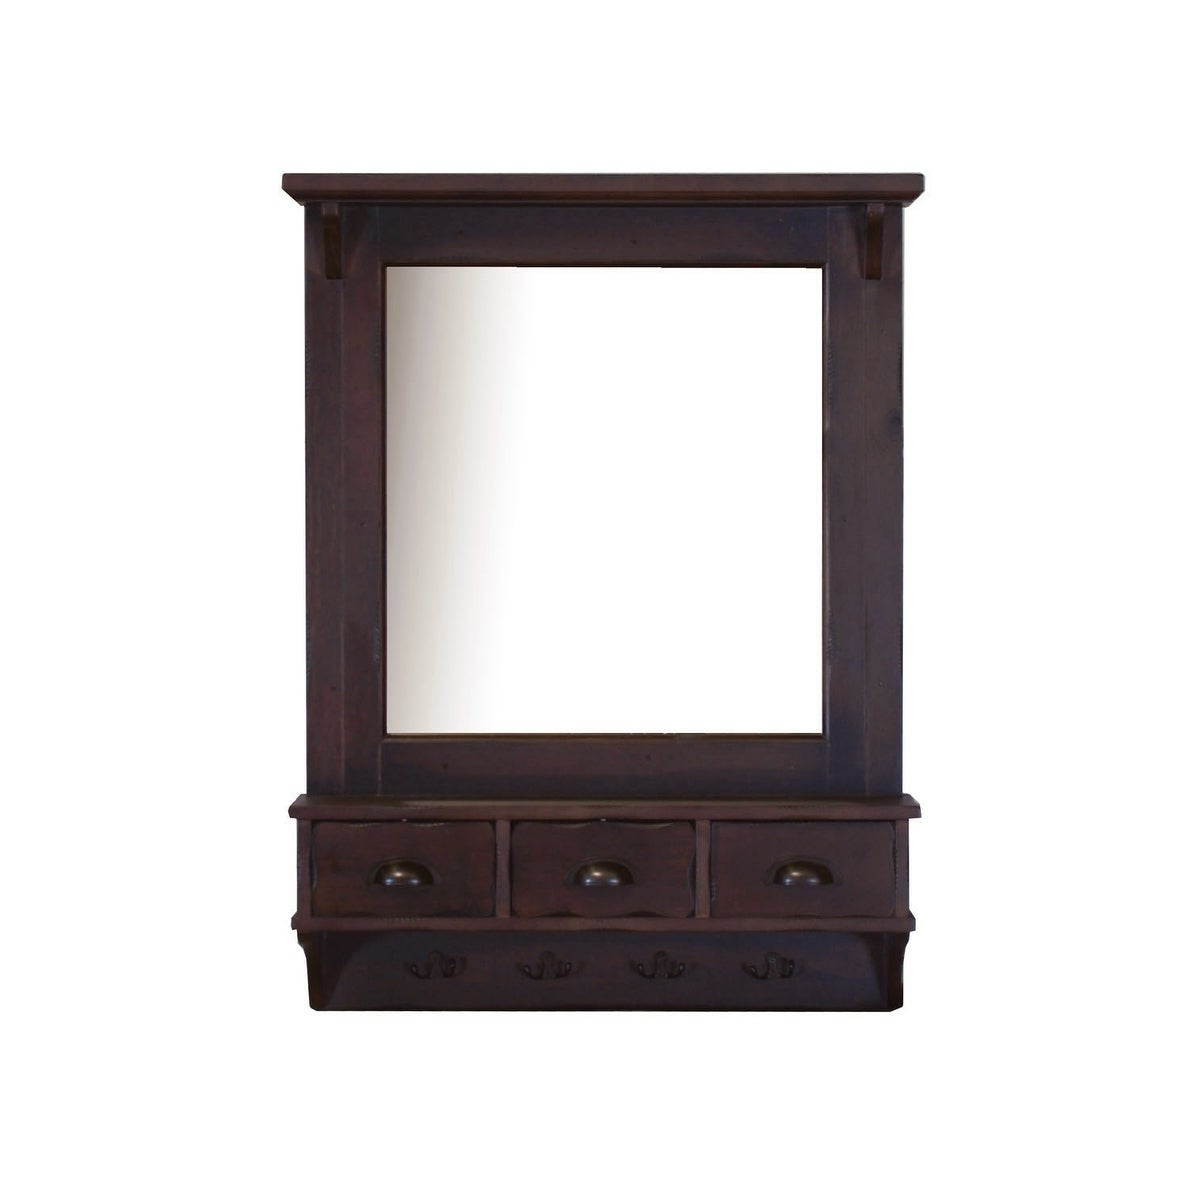 Wall Mirrors With Hooks Pertaining To Newest Bombay Brown Wall Mirror With Drawers And Hooks – A/n (View 8 of 20)